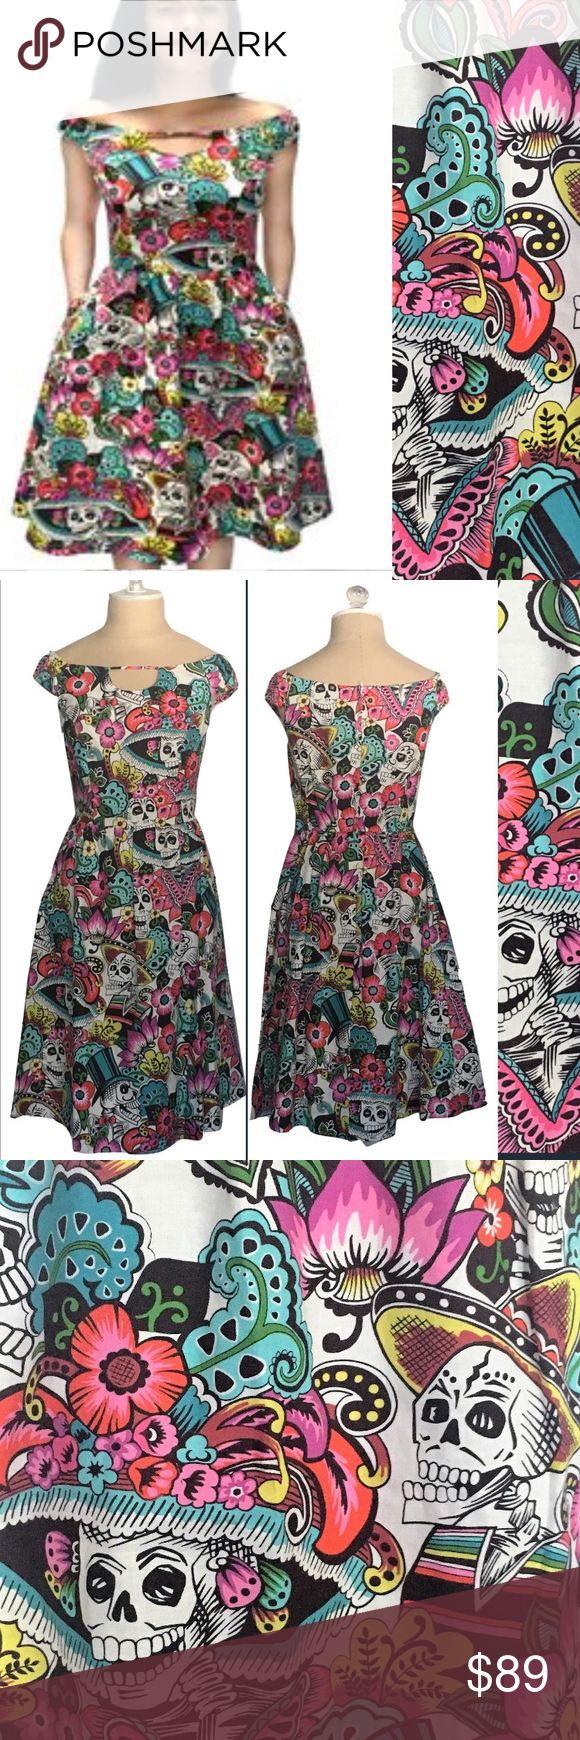 Skulls on Parade dress This off the shoulder dress features all over colorful day of the dead print. Zipper opening on back as well as elastic at waist for extra stretch. Includes pockets!  100% Cotton  Made in USA Dresses